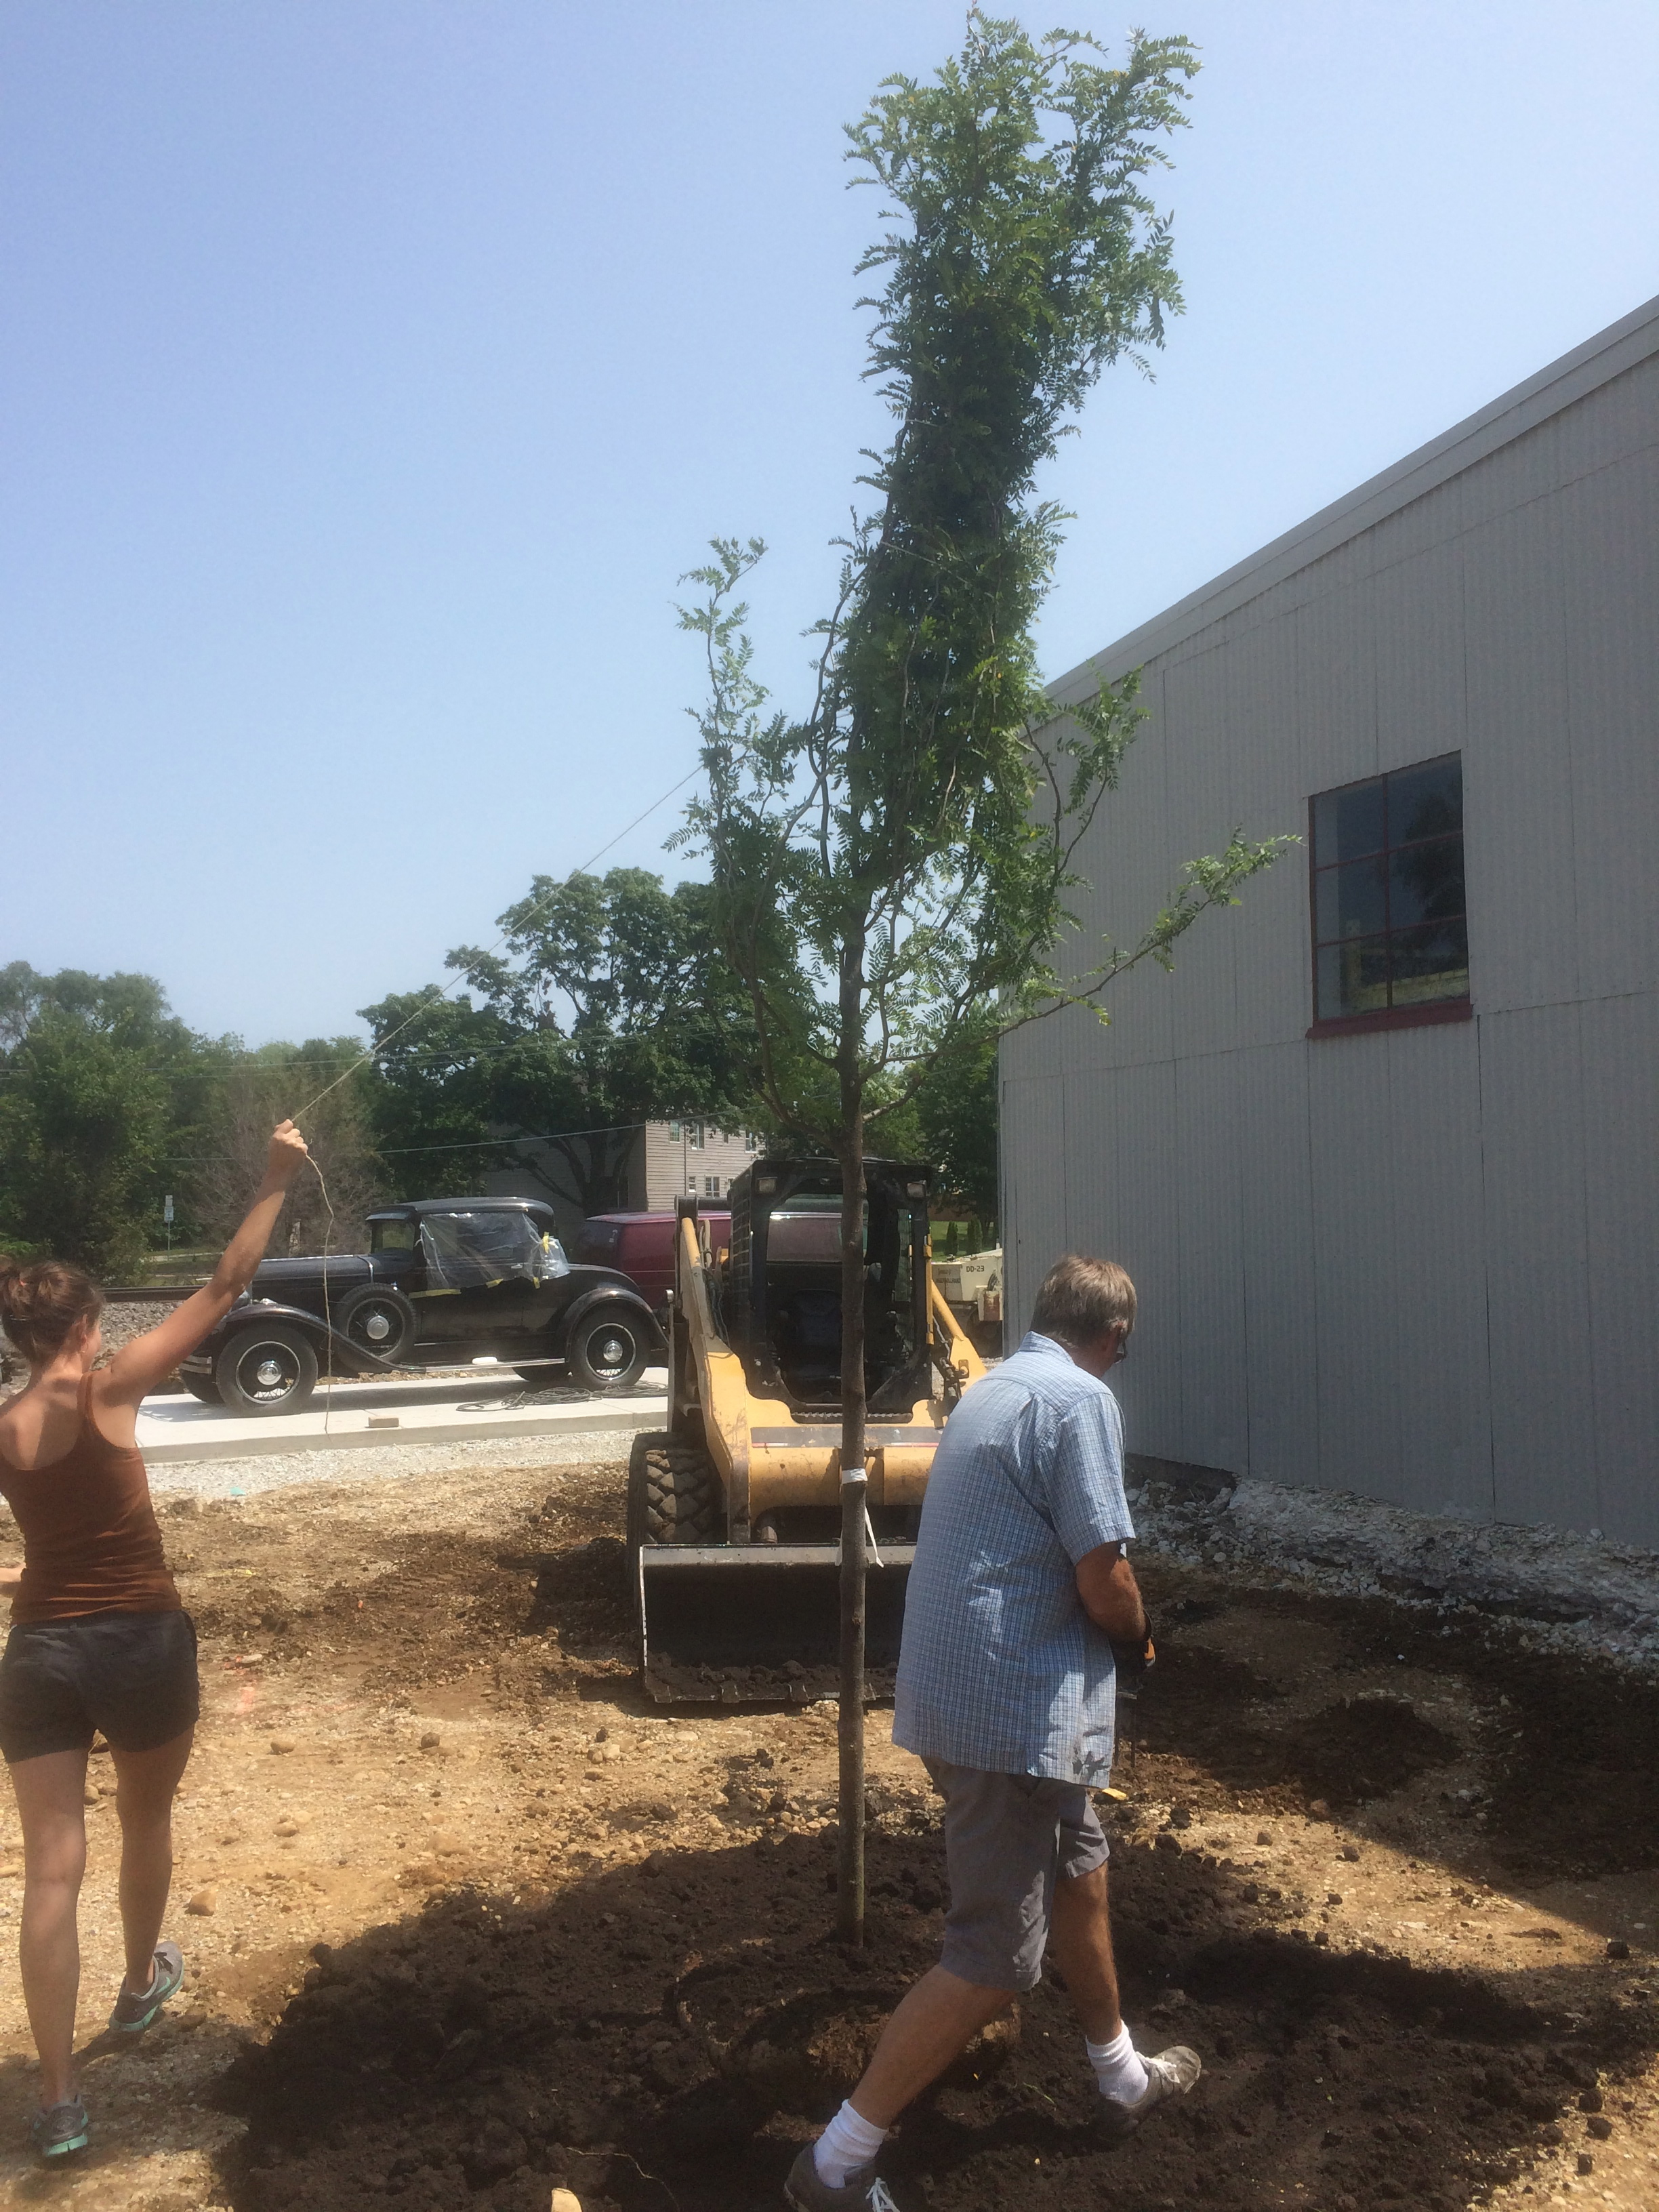 My dad, Clayton, and I planting the two trees in the courtyard, before the pavers were installed.